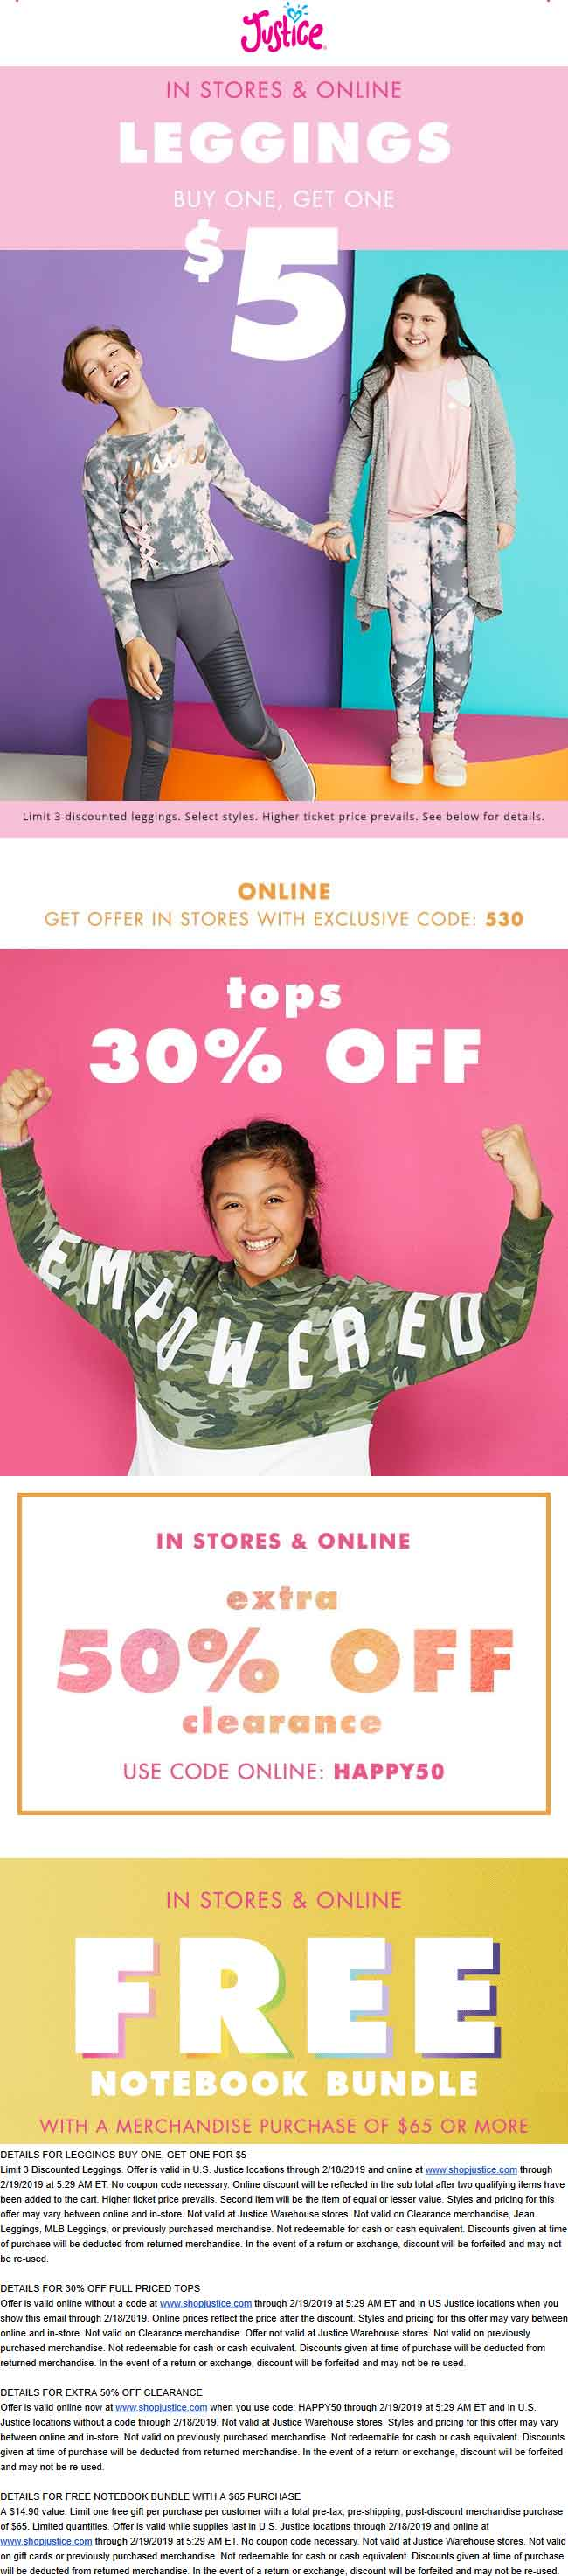 Justice Coupon March 2019 30% off tops today at Justice, ditto online